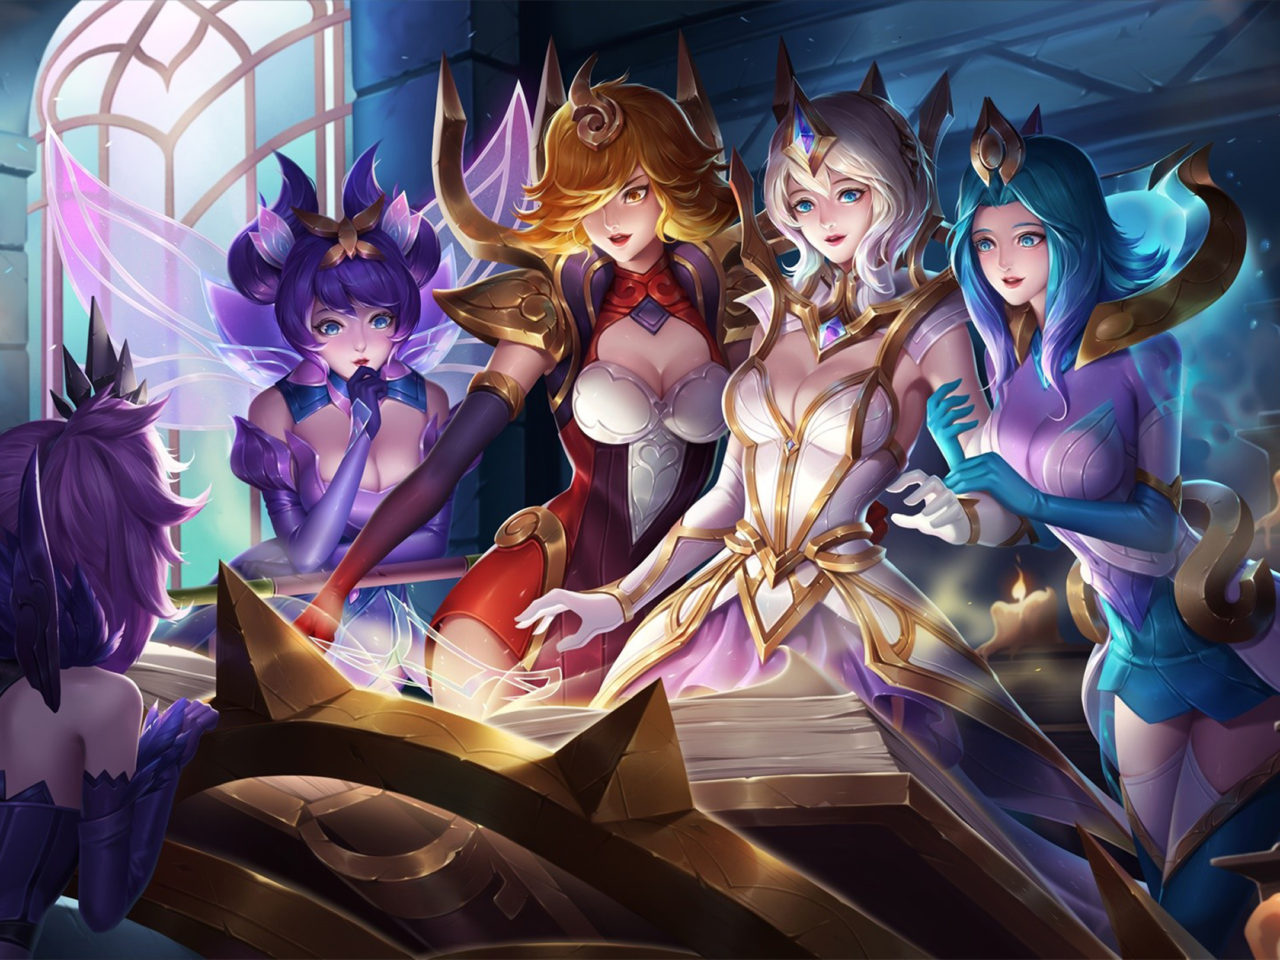 Iphone 4 Animated Wallpaper Elementalist Lux Skin Video Game League Of Angel Fan Art